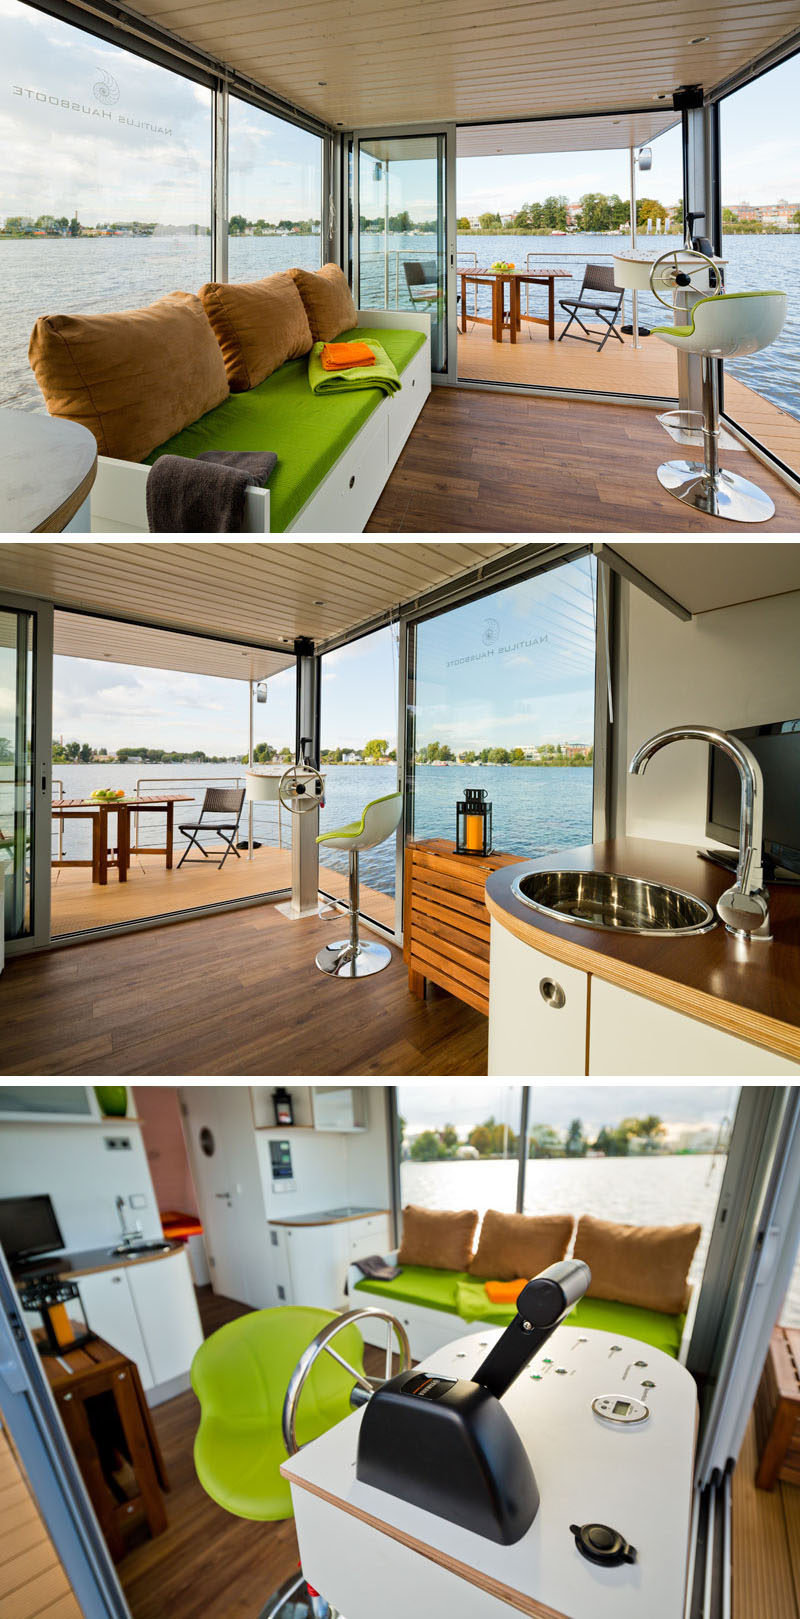 This modern houseboat has large sliding doors that open to create an indoor/outdoor environment. Inside, there's a couch in the living room that can be made into a bed for two. #ModernHouseboat